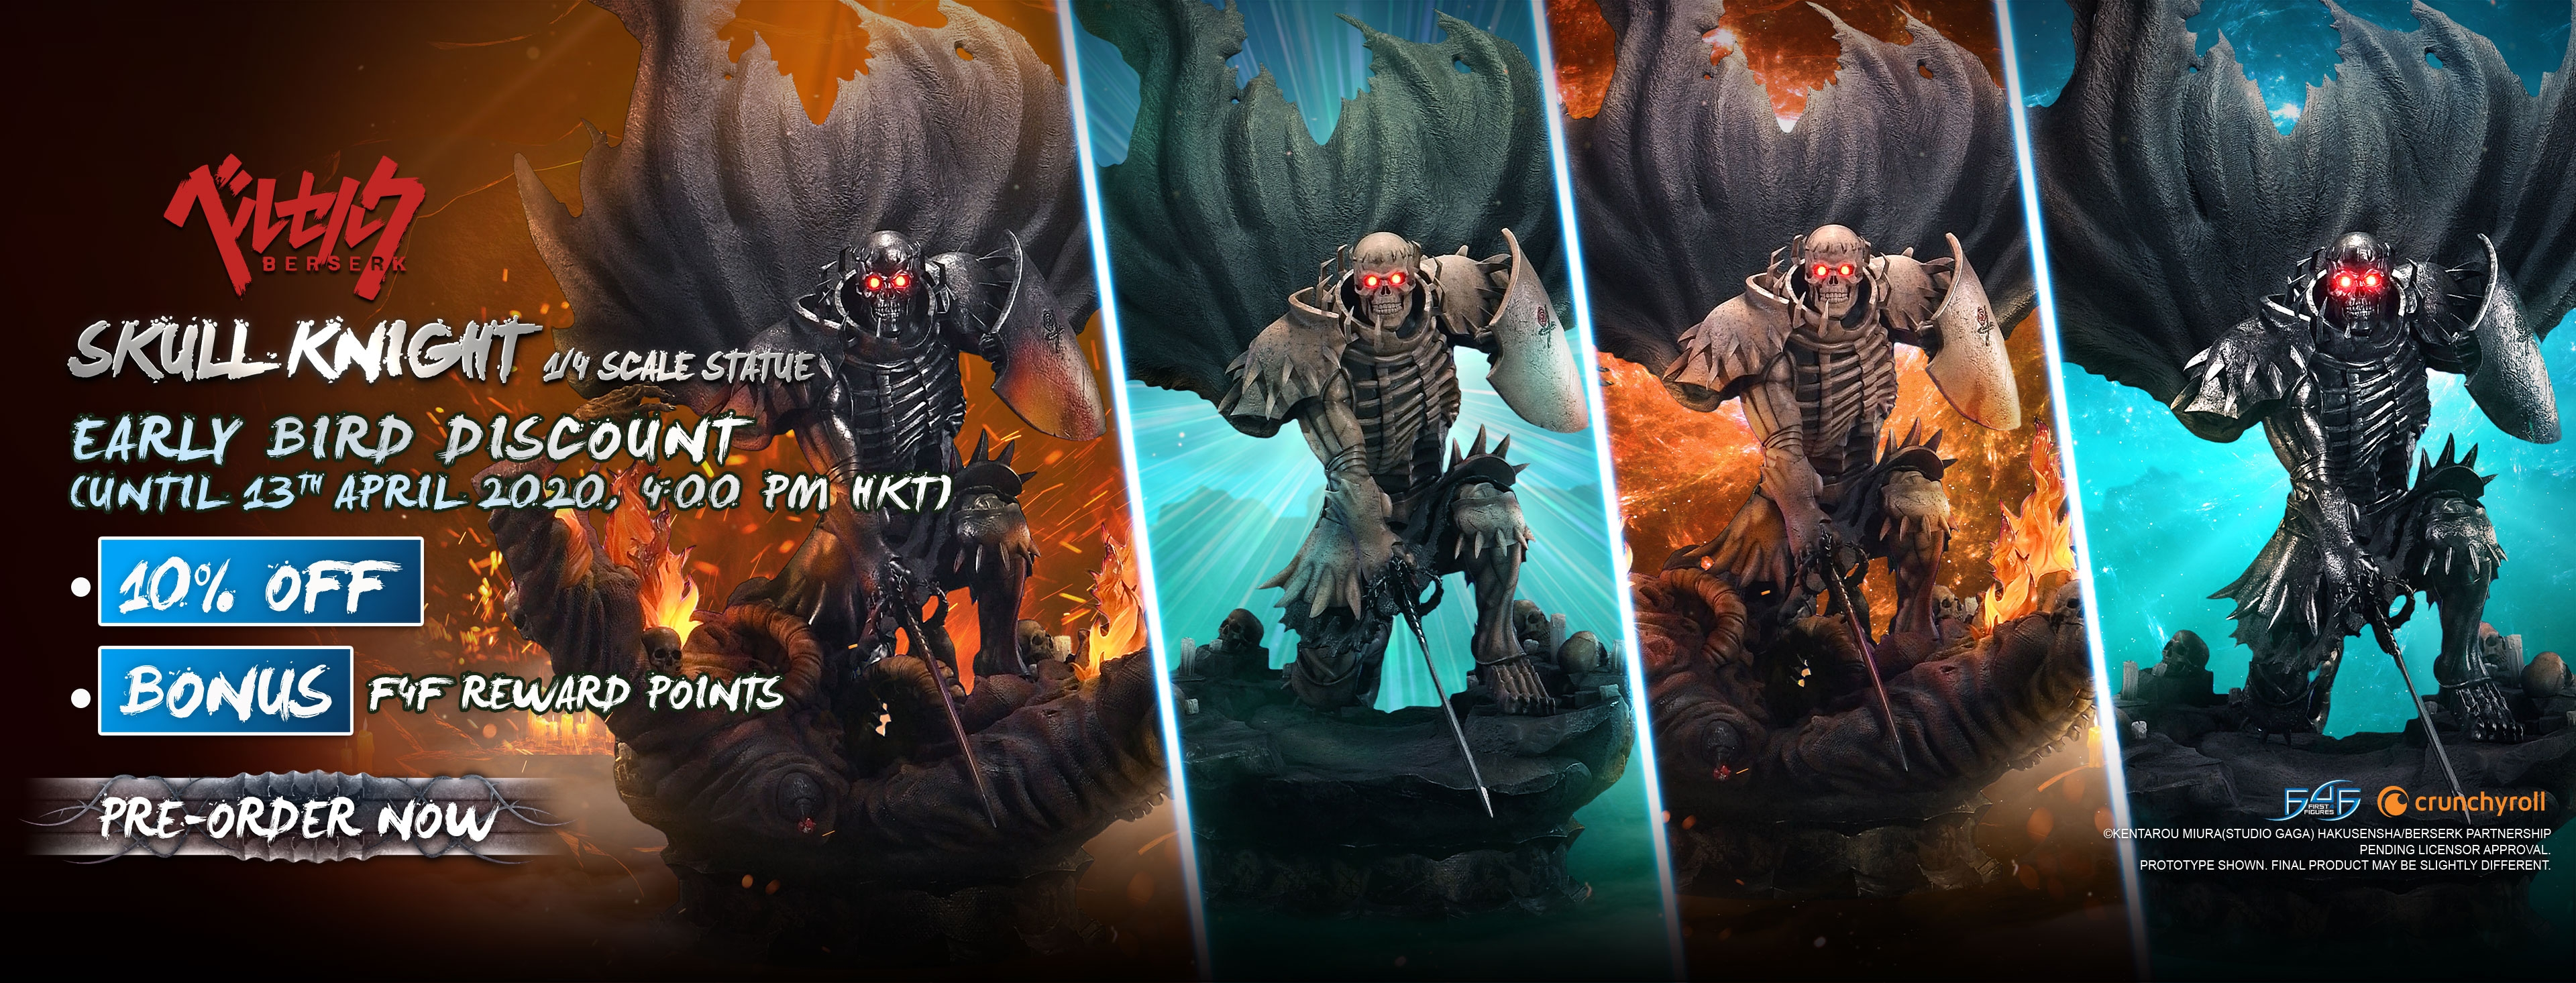 Skull Knight Early Bird Promotion